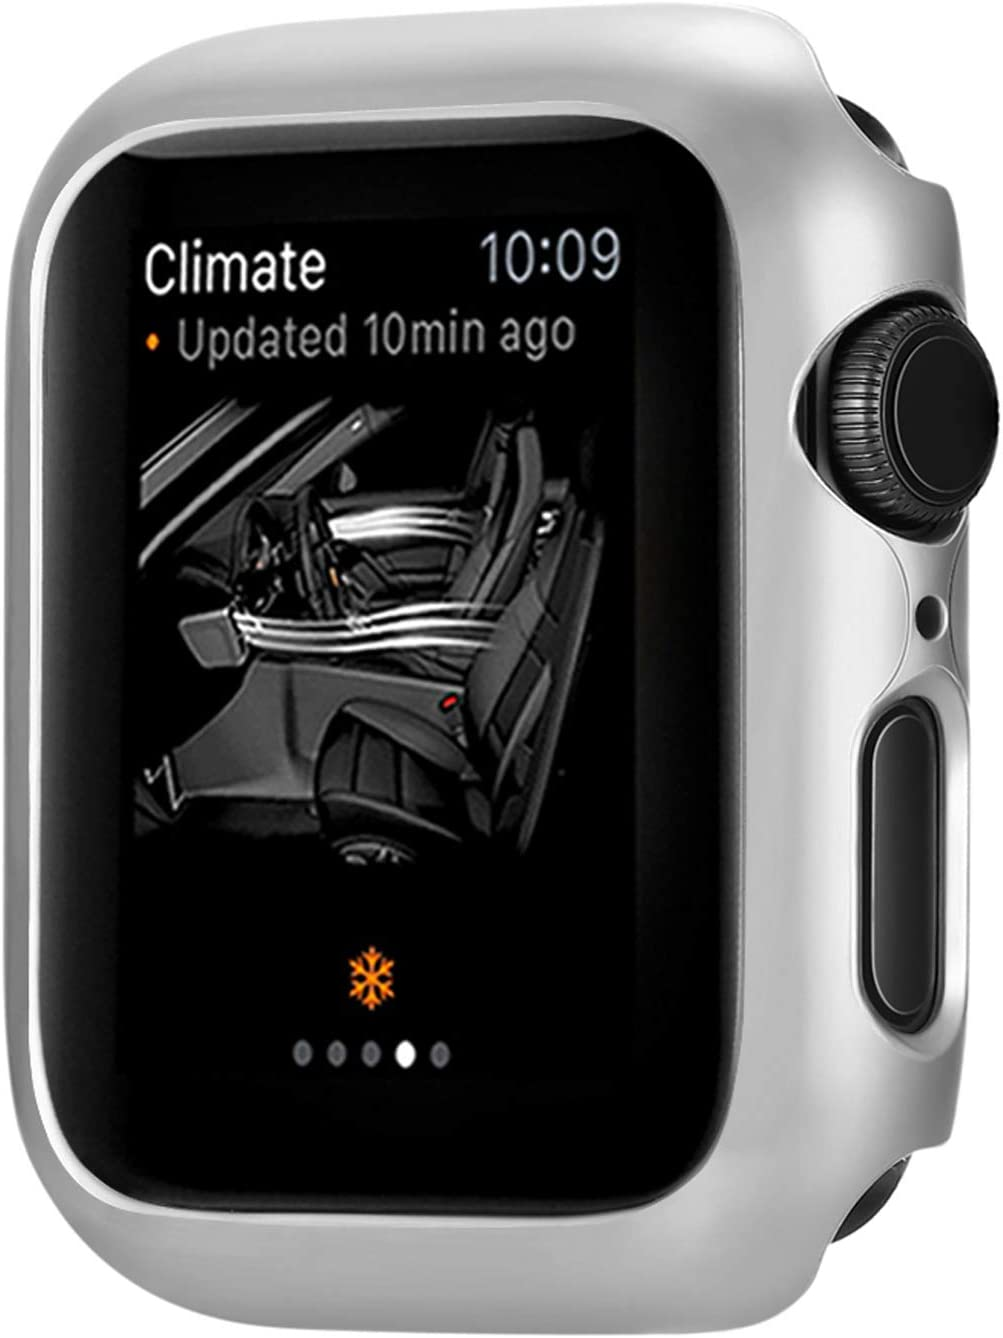 Leotop Compatible with Apple Watch Series 6 5 4 SE Case 44mm 40mm, Super Thin Bumper Protector PC Hard Cover Lightweight Slim Shockproof Accessories Matte Frame Compatible iWatch (Silver, 44mm)